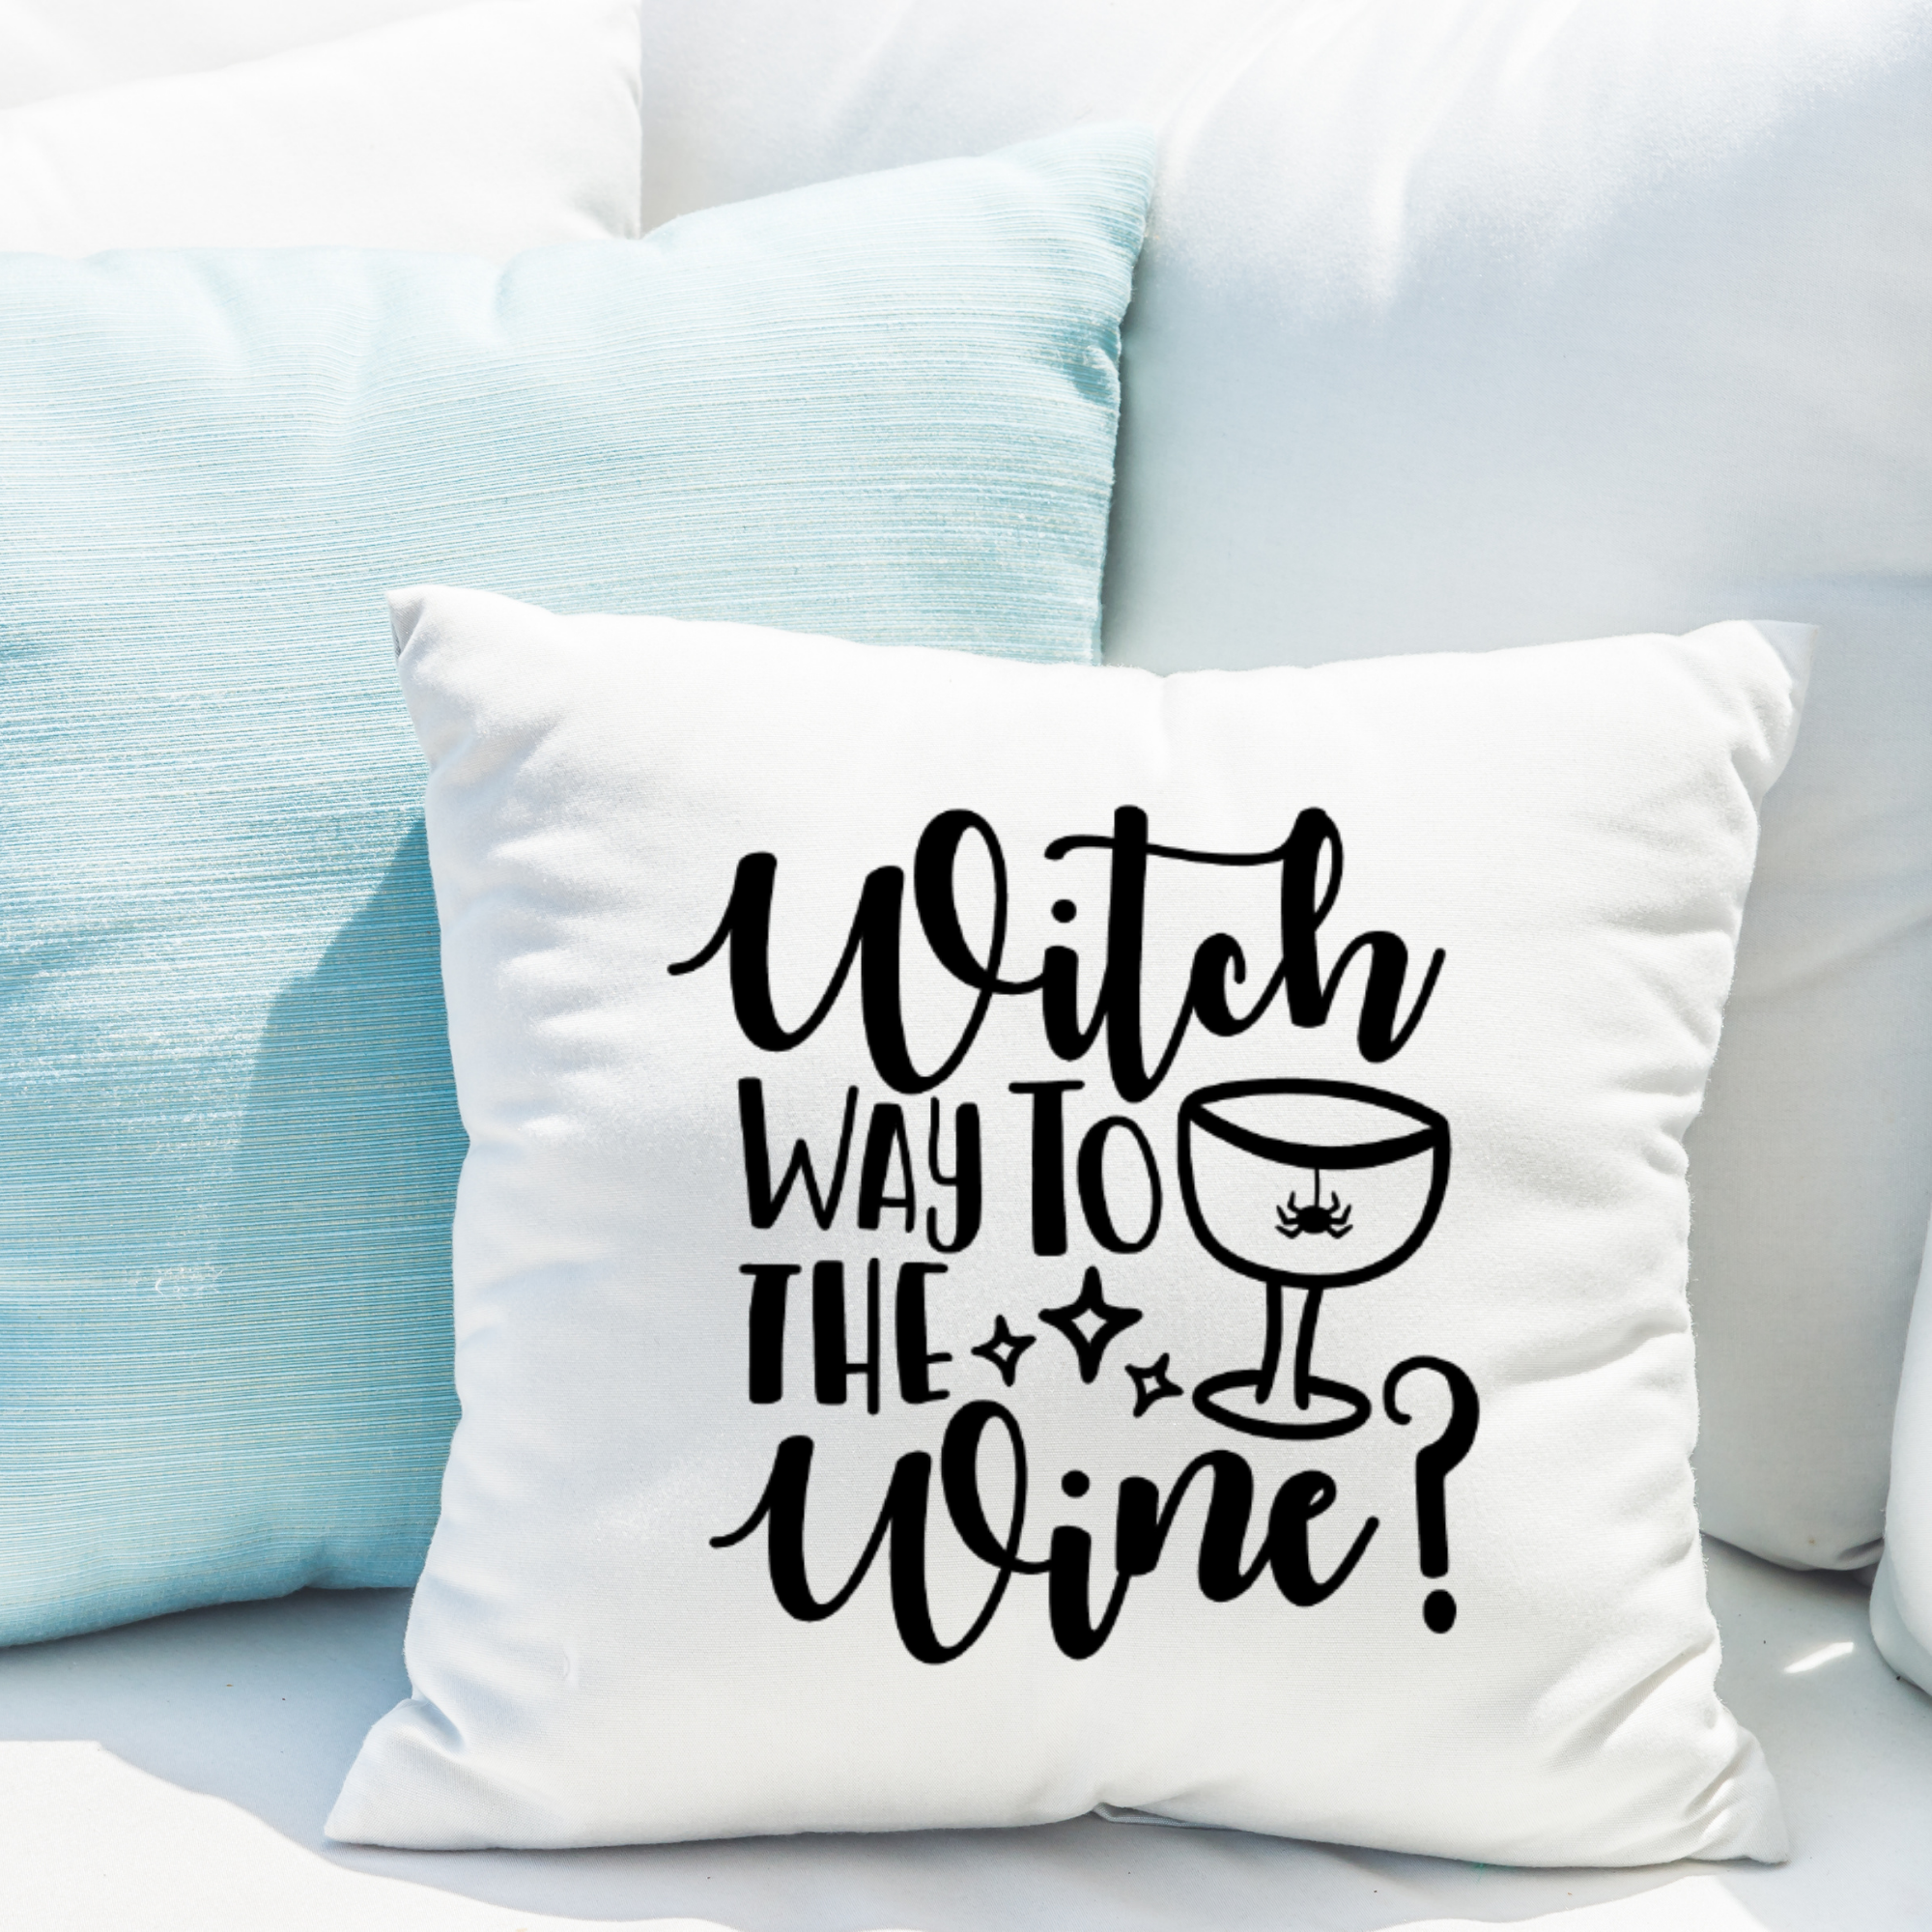 Funny Halloween Pillow Cover, Wine Lover's Gift